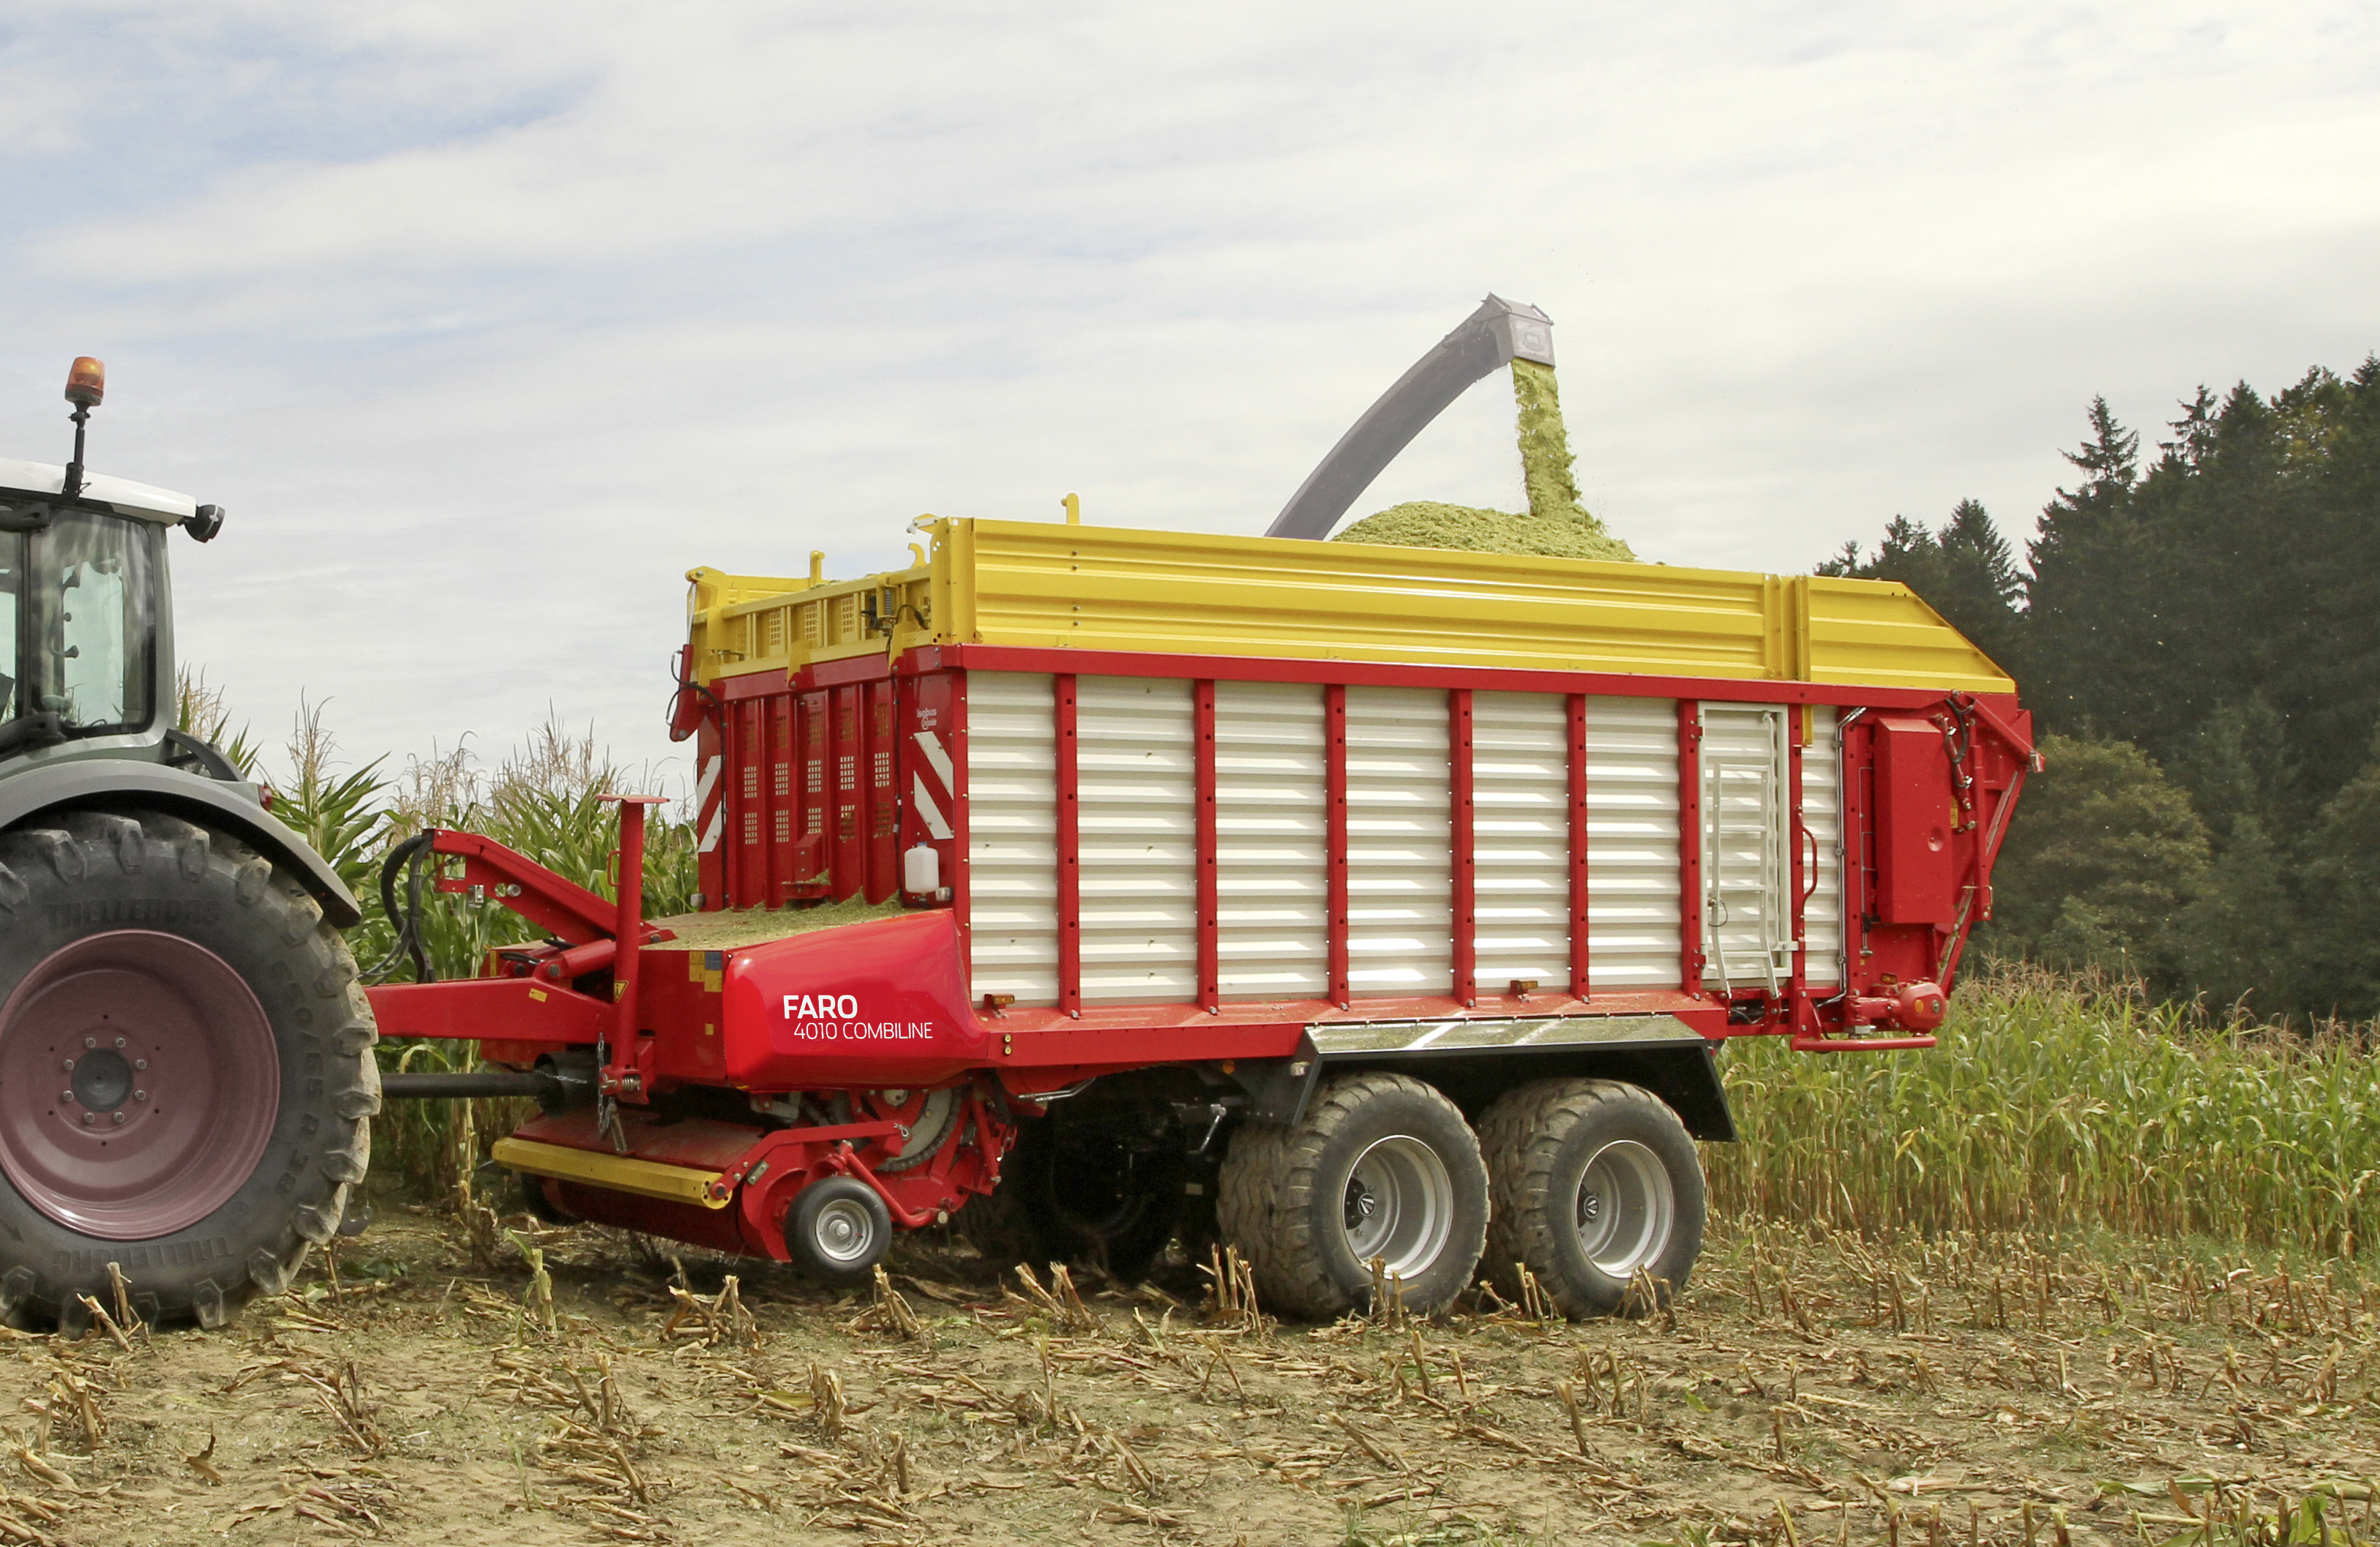 Faro Combiline 2 In 1 Loader Wagon Technology Silage